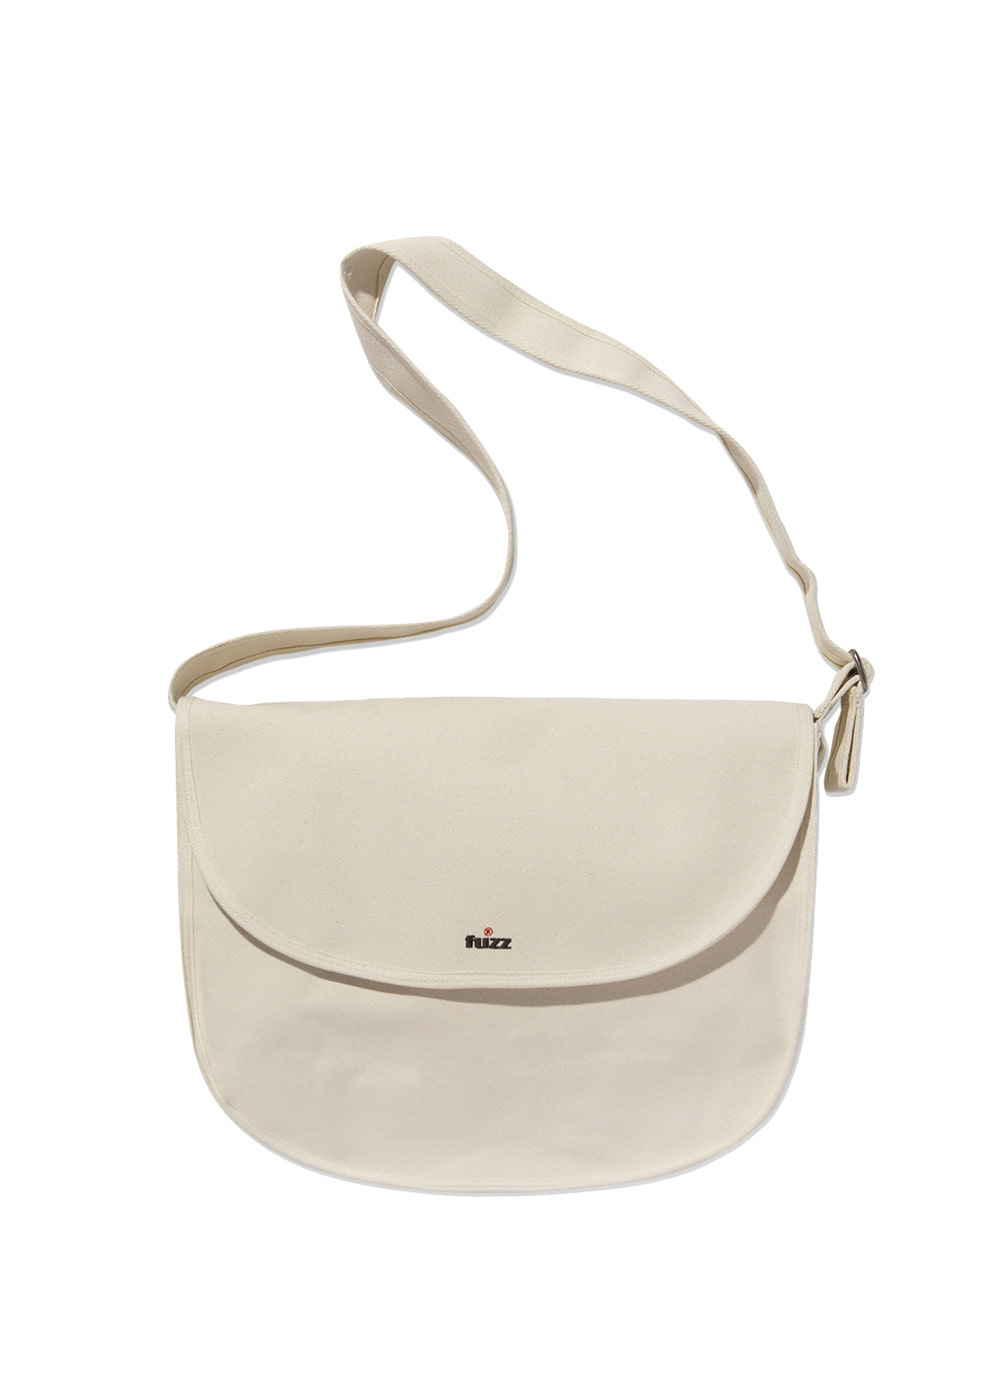 FUZZ CANVAS MESSENGER BAG ivory